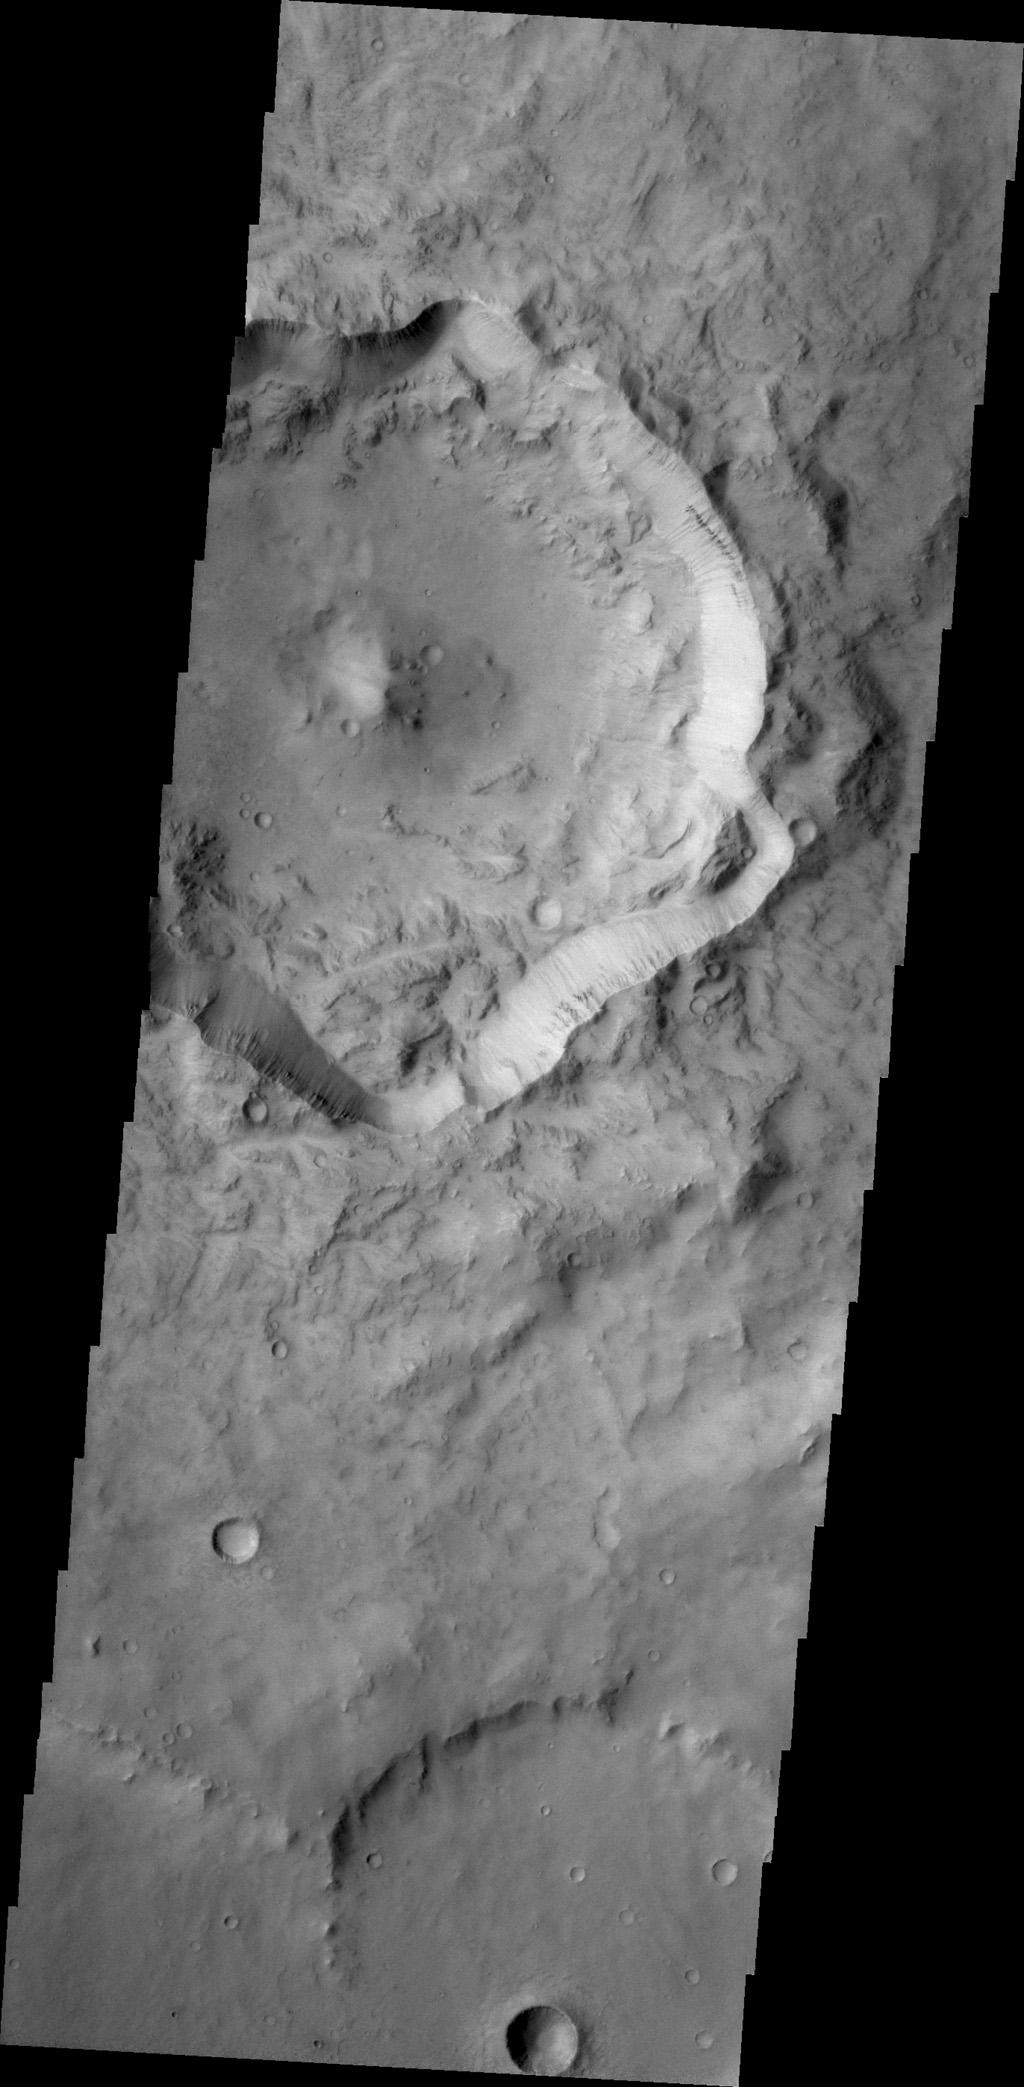 This unnamed crater in Terra Cimmeria is not as round in shape as other craters. Major landslides have occurred on the crater rim, resulting in the final shape as seen by NASA's 2001 Mars Odyssey spacecraft.